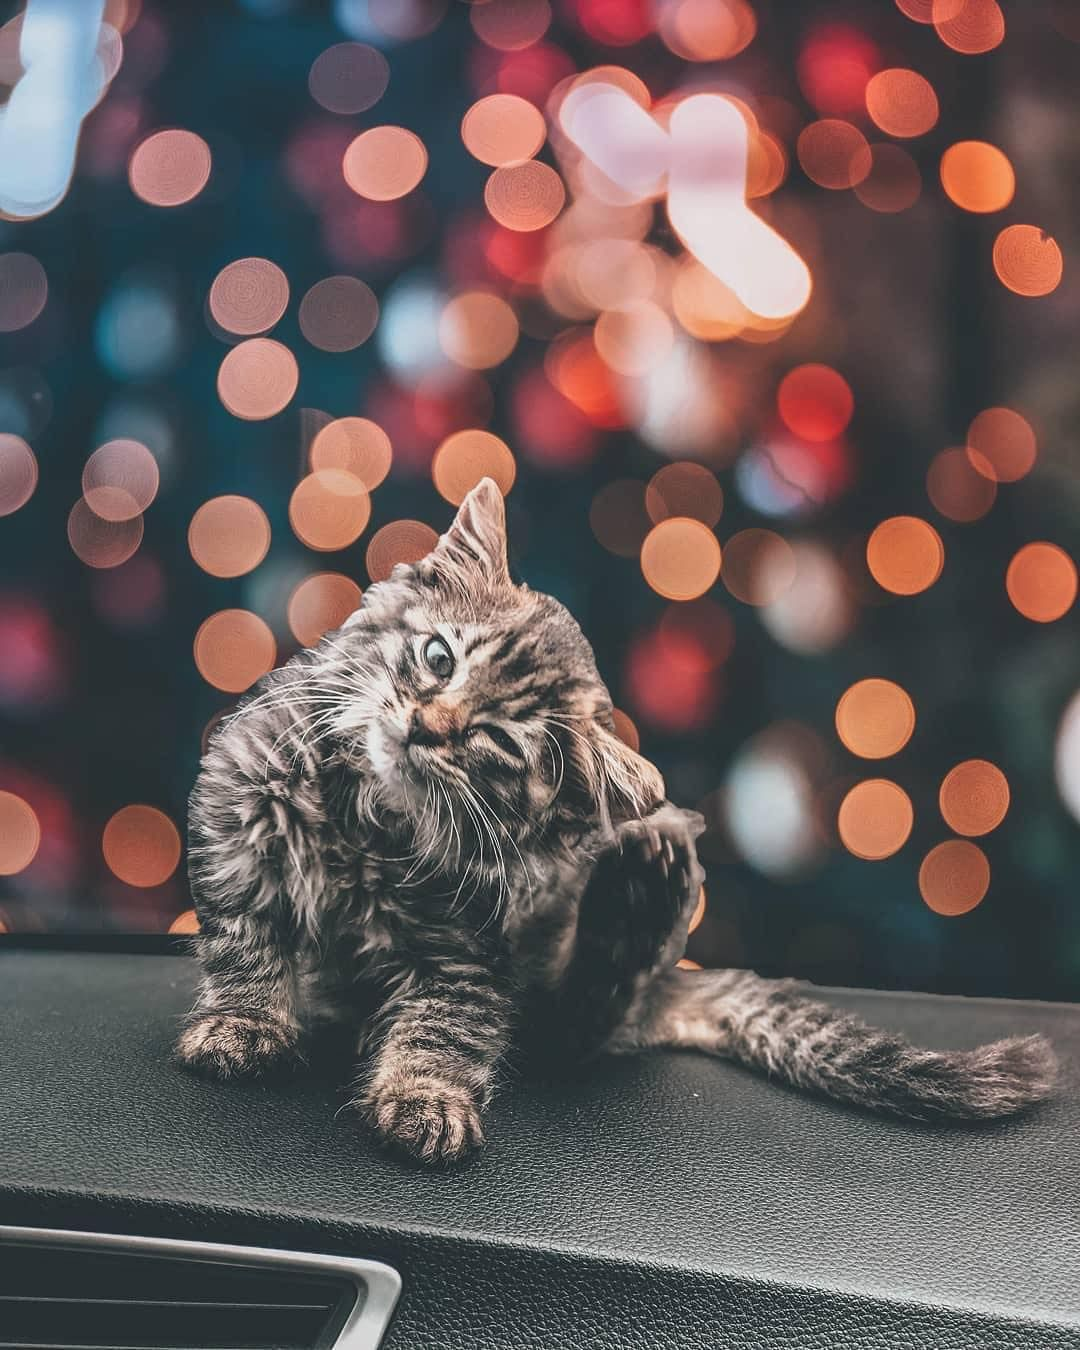 14 9k Likes 143 Comments Ourmoodydays Ourmoodydays On Instagram M Presents Amazingerr Liss Photography Guidelines Cats World Photography